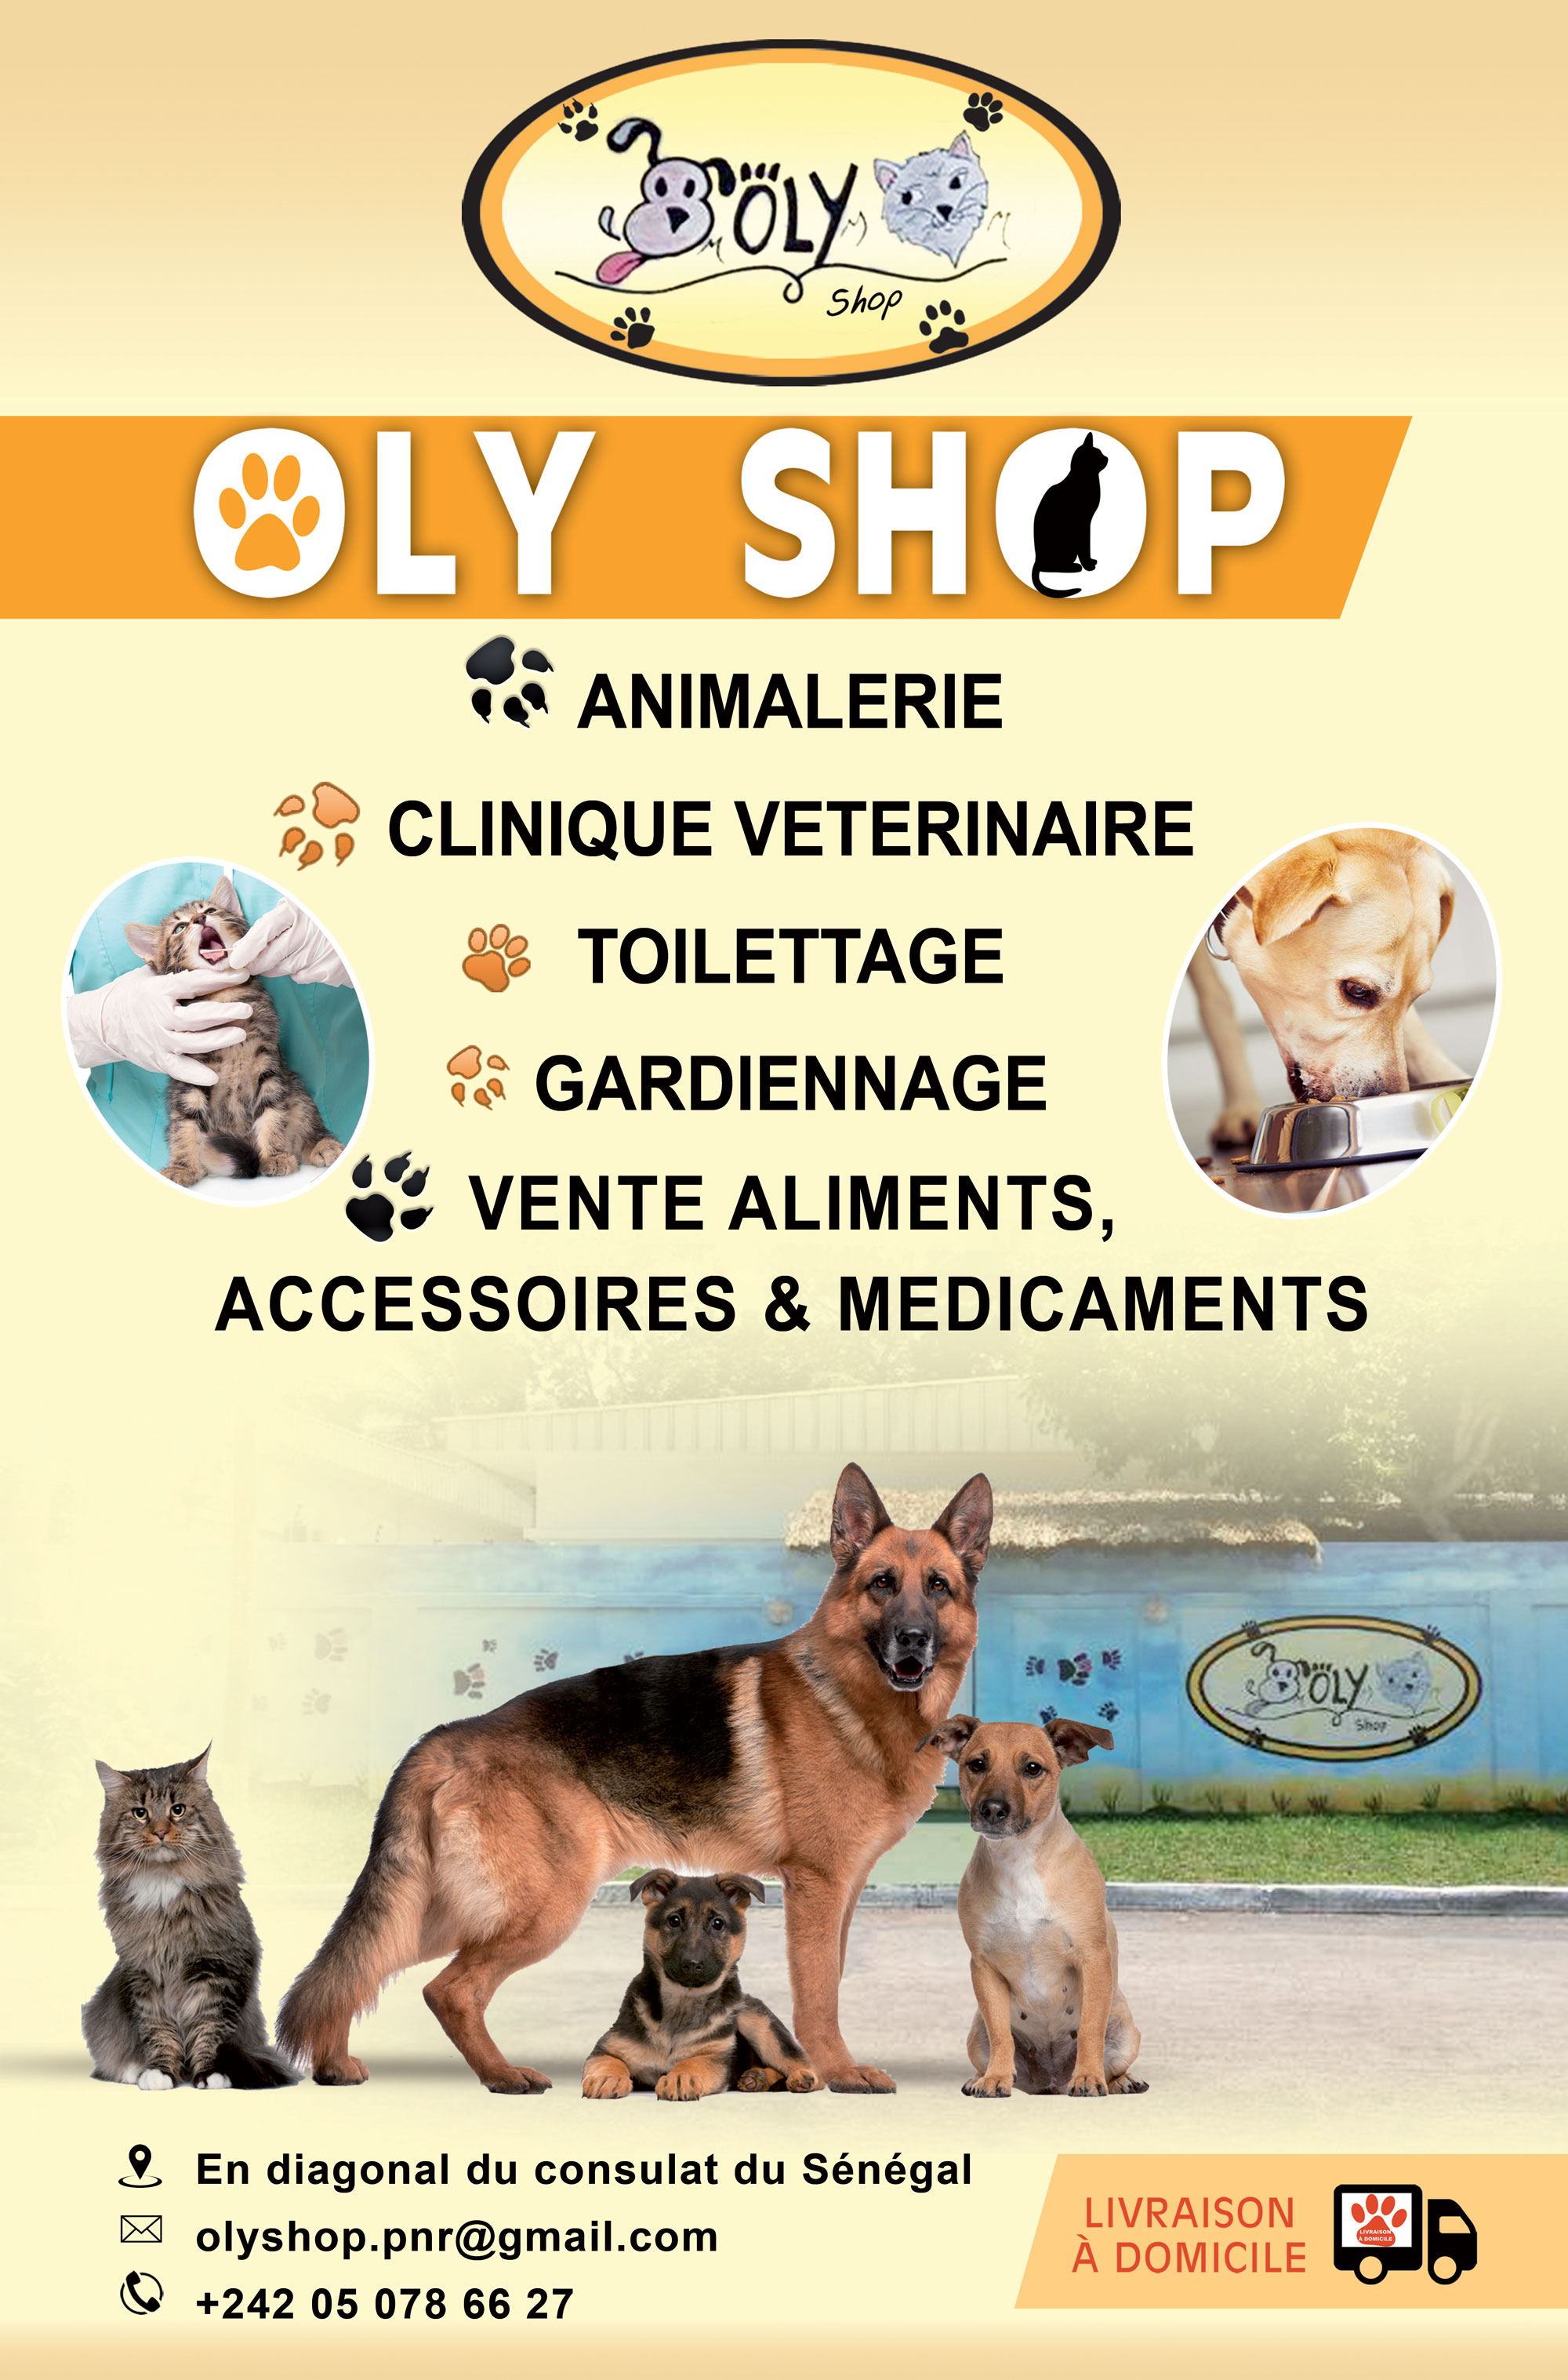 Oly Shop